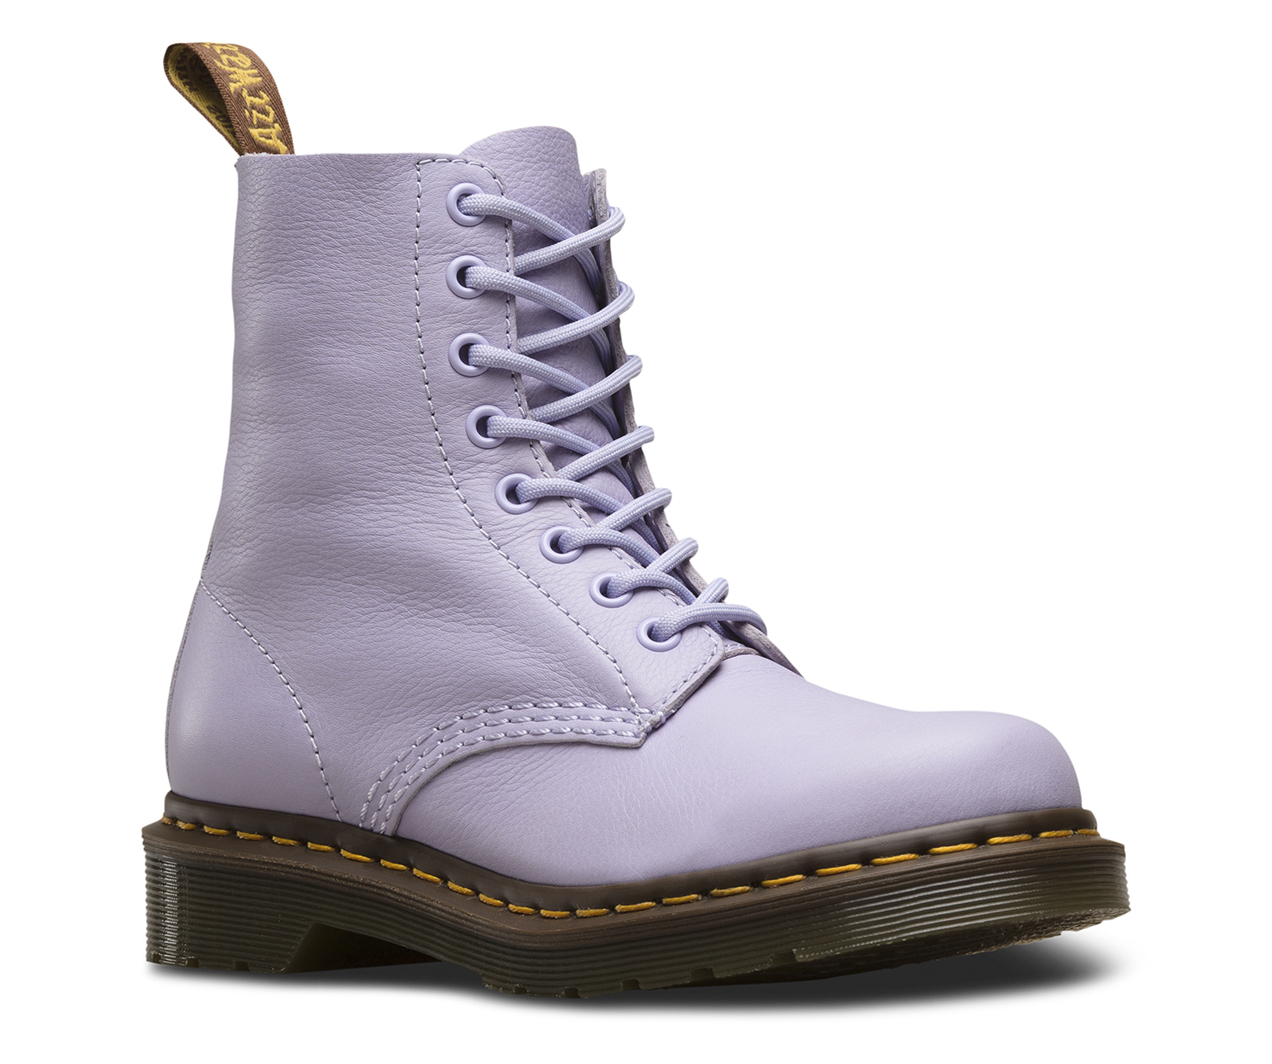 Dr. Martens Boots Pascal Boots - Purple Heather Virginia NtiC4sFT8